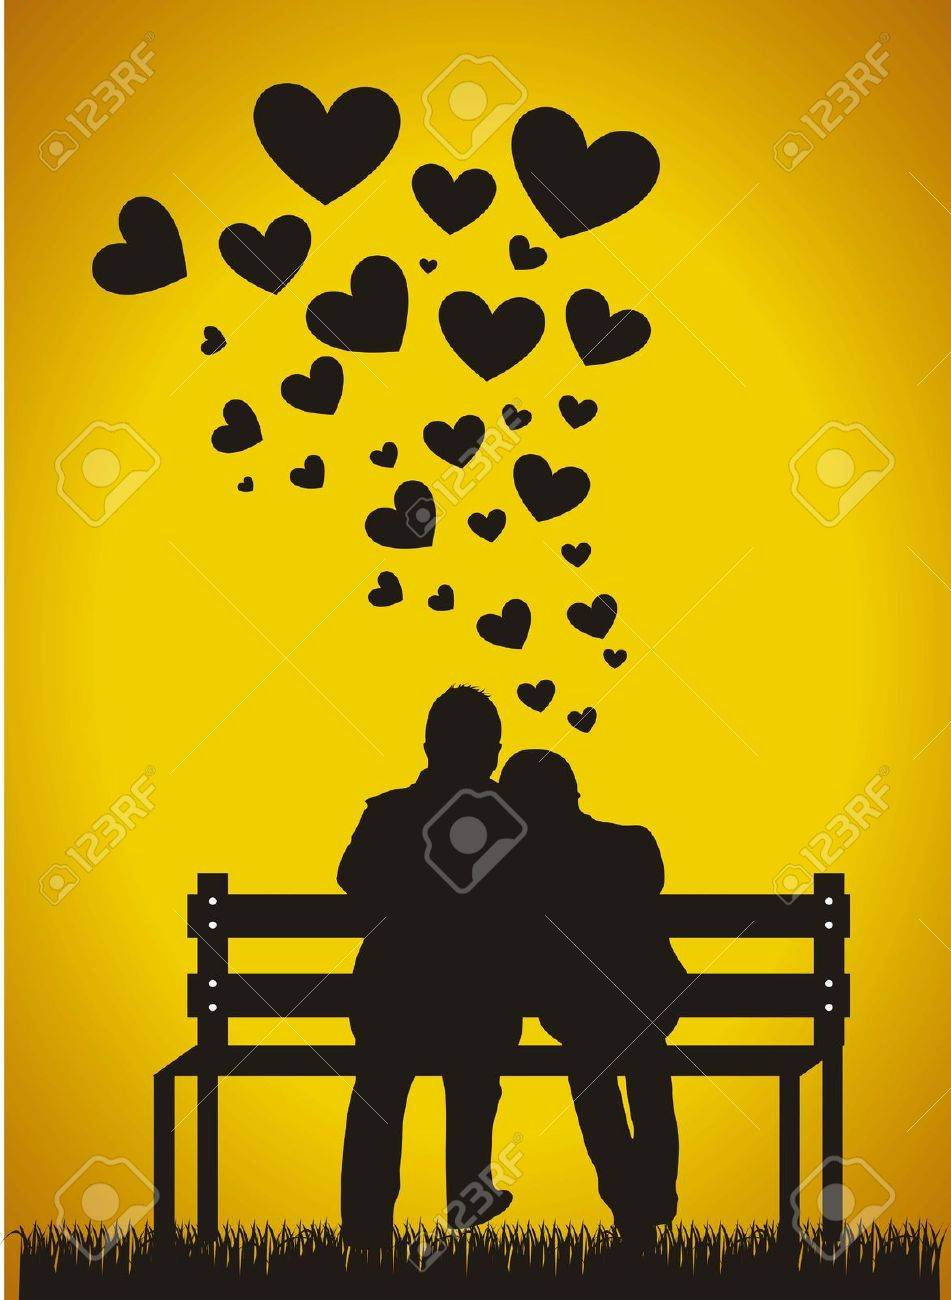 couple sitting silhouette with hearts over orange background. Stock Vector - 15786891